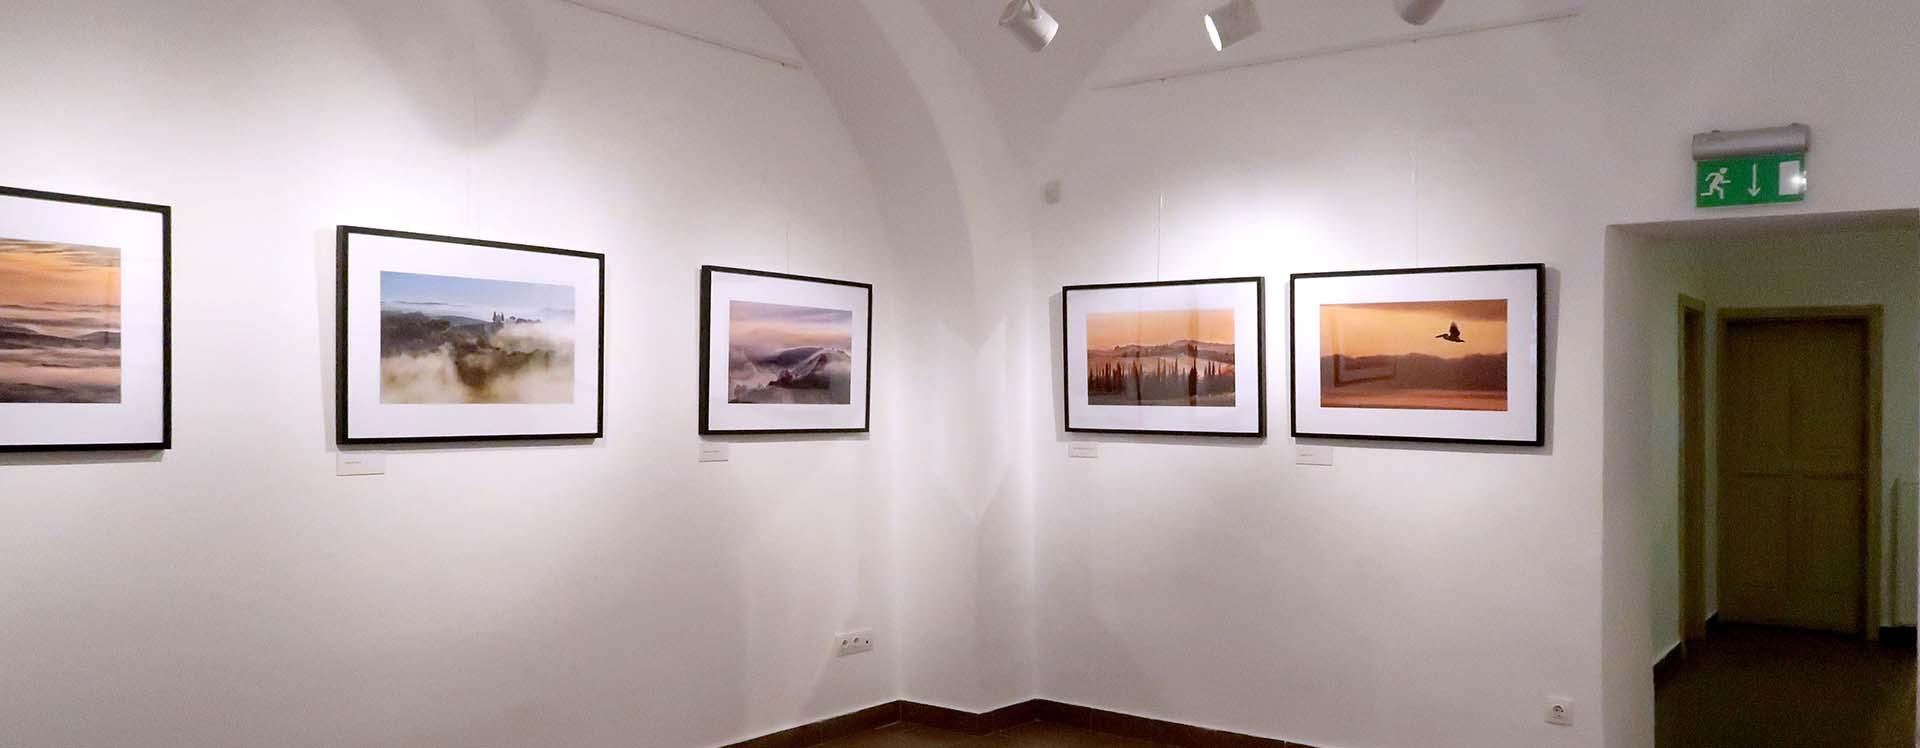 Photo printing - photo exhibition Budapest - acrylic photo printing - giclée printing - canvas printing